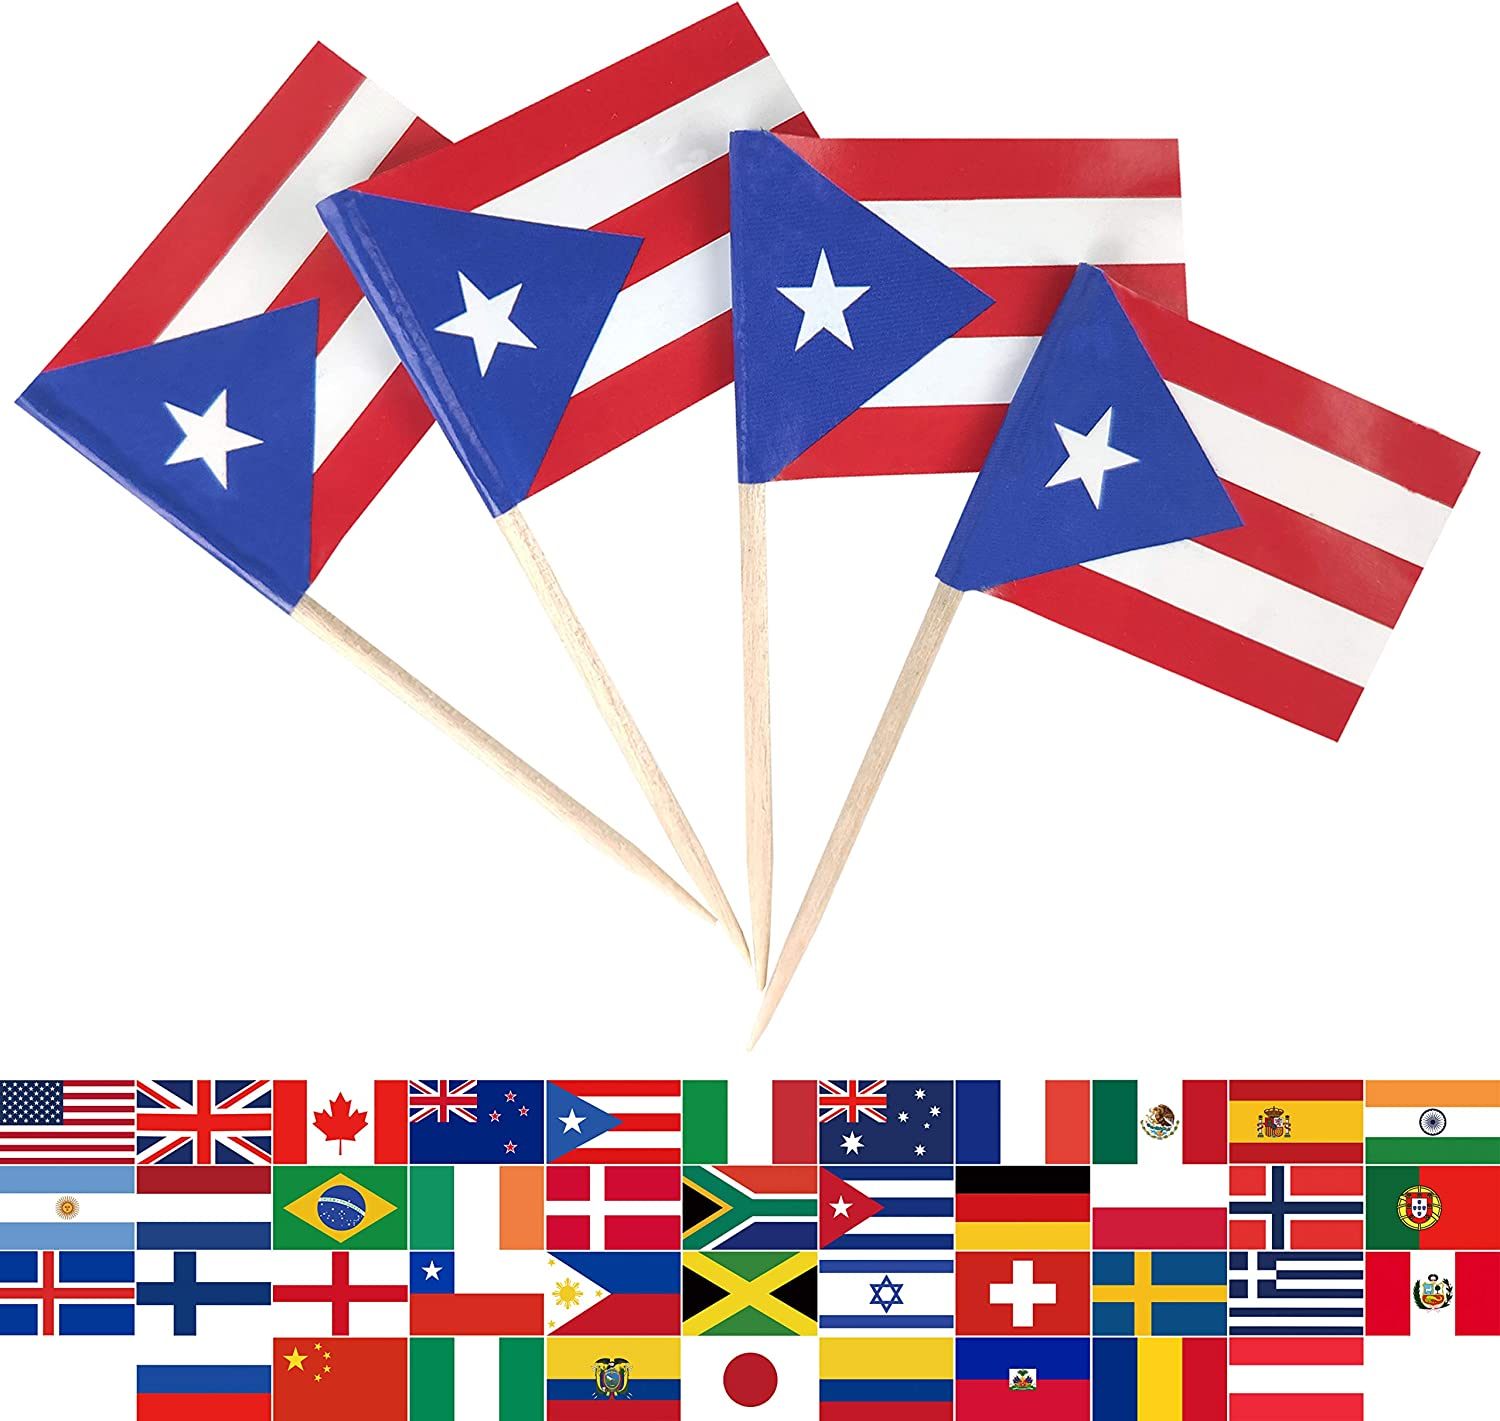 JBCD 100 Pcs Puerto Rico Flag Toothpicks Puerto Rican Flags Cupcake Toppers Decorations, Cocktail Toothpick Flag Cake Topper Picks Mini Small Flag Cupcake Pick Sticks